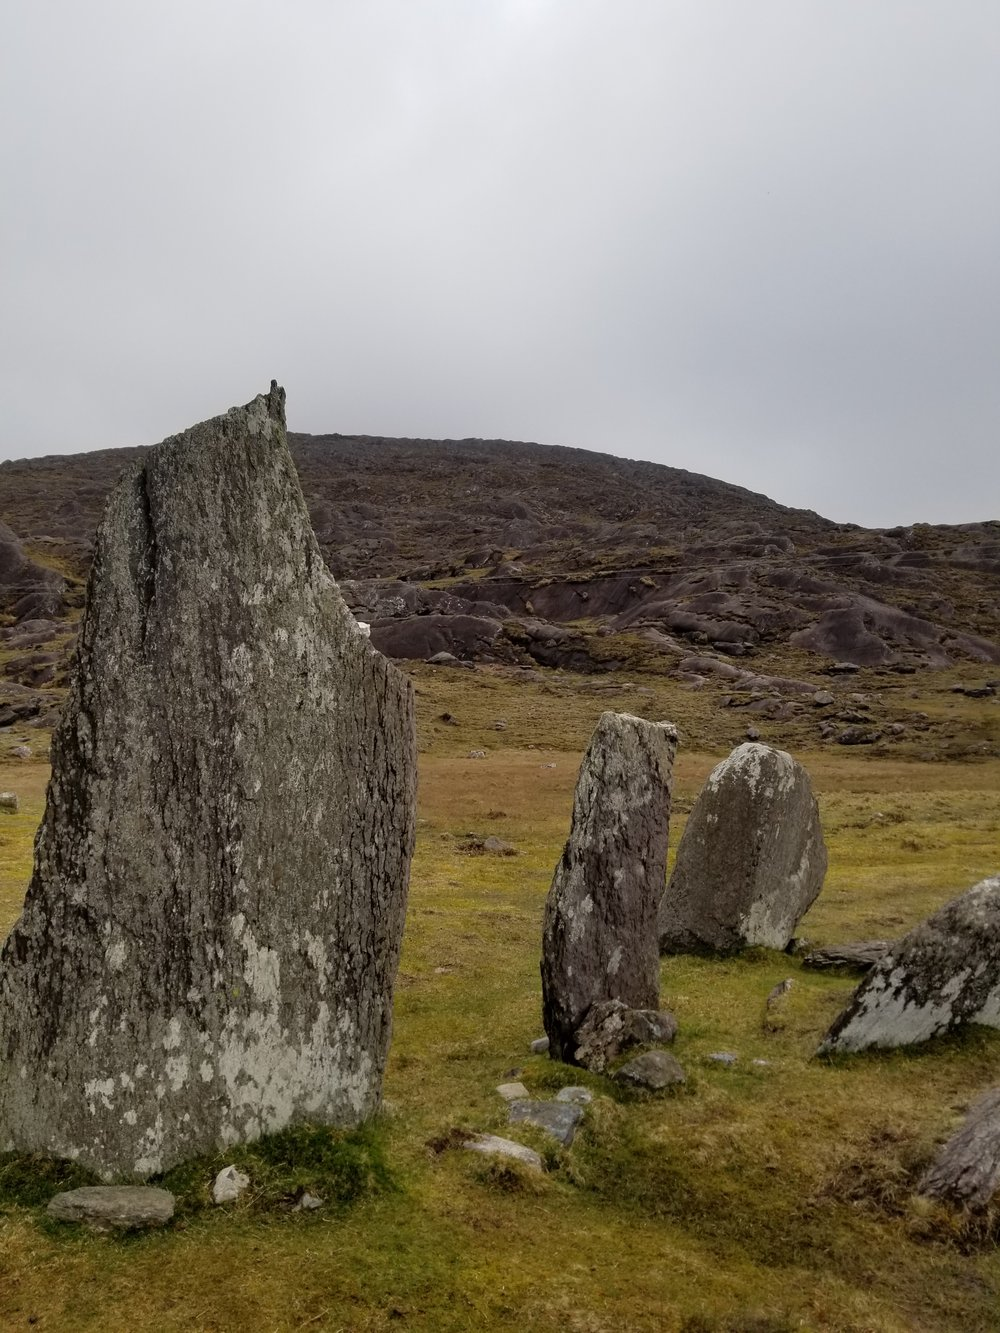 Stones and Bones - Ancient standing stones marking the boundary of this sacred space. Picture taken at Cashel Keelty, Co. Kerry, Ireland.